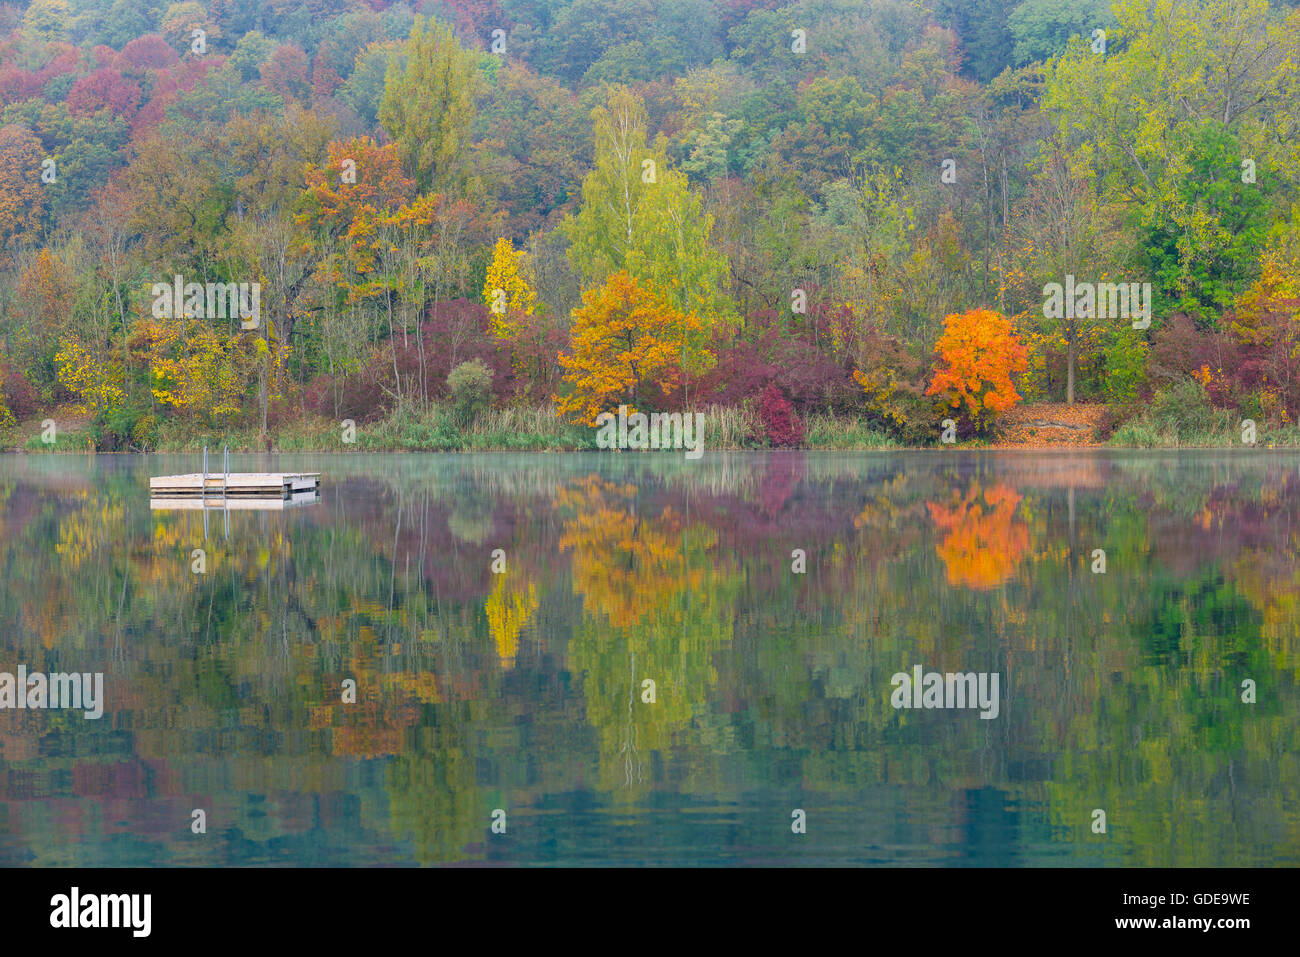 quarry pond,Bavaria,trees,Germany,Europe,water,autumn,autumn scenery,autumnal,autumn wood,deciduous forest,nature,Ne Stock Photo